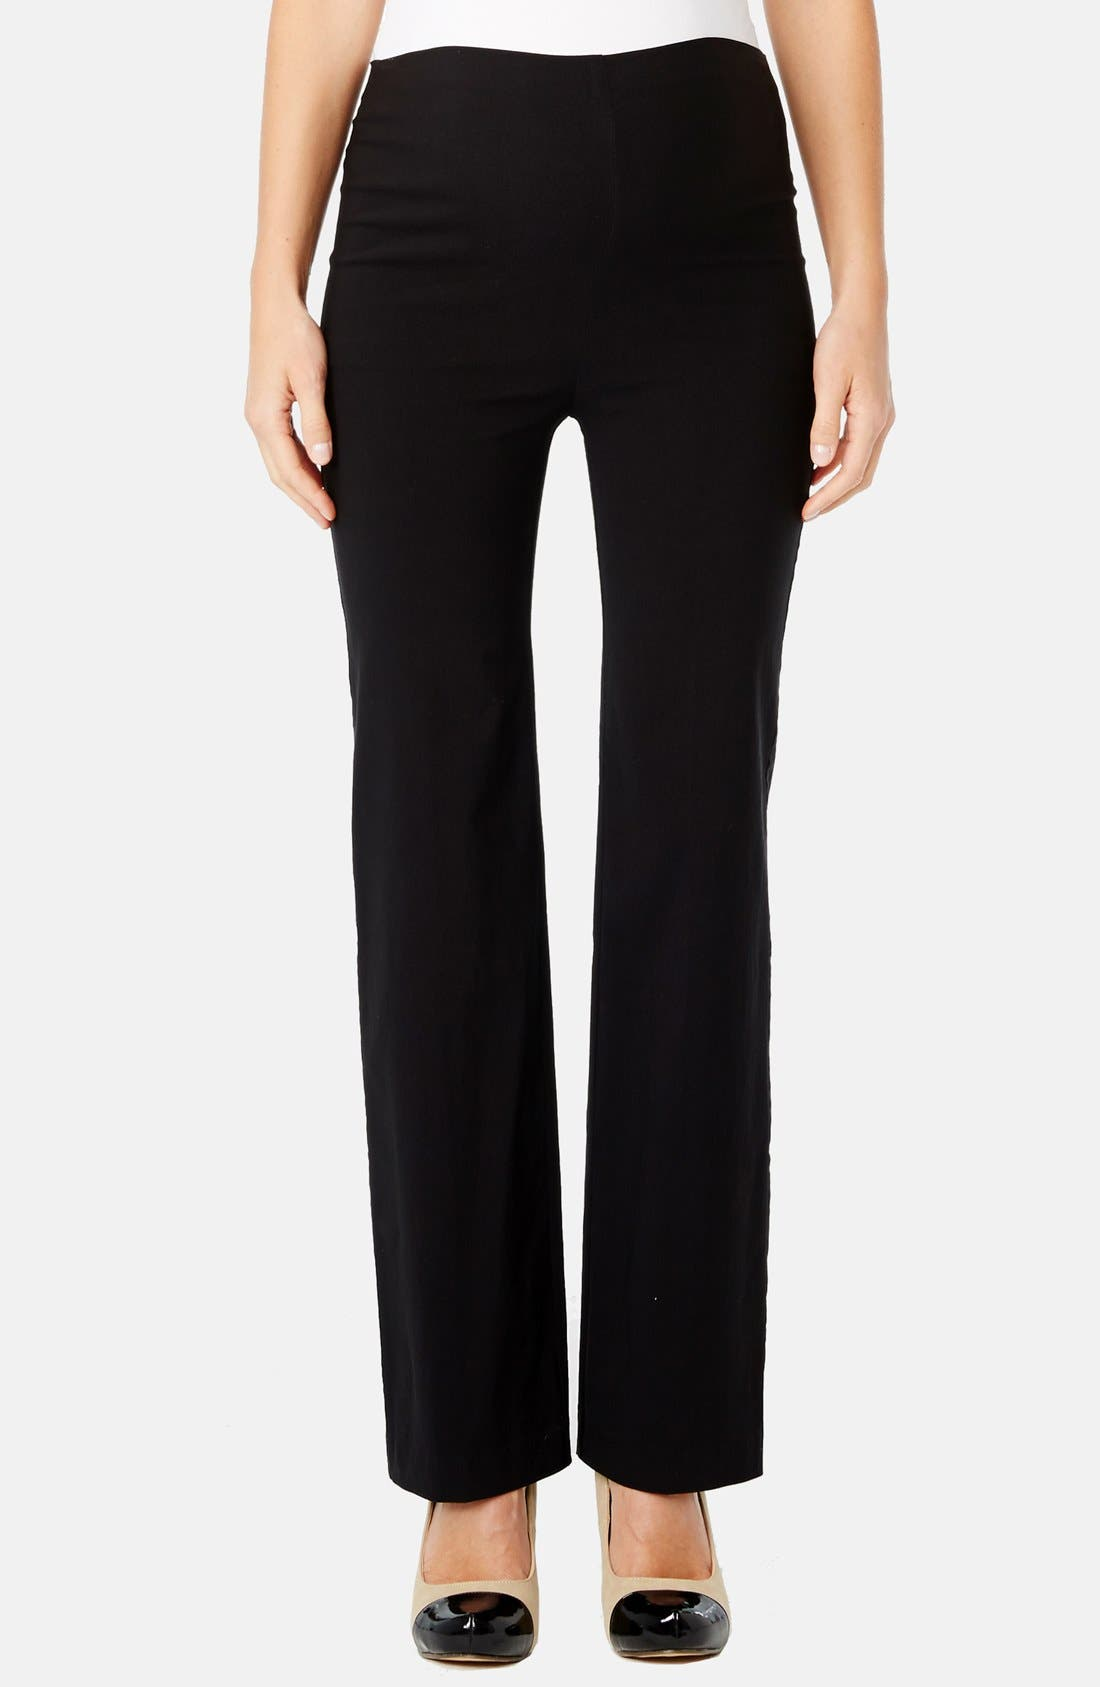 Rosie Pope 'Pret' Maternity Trousers